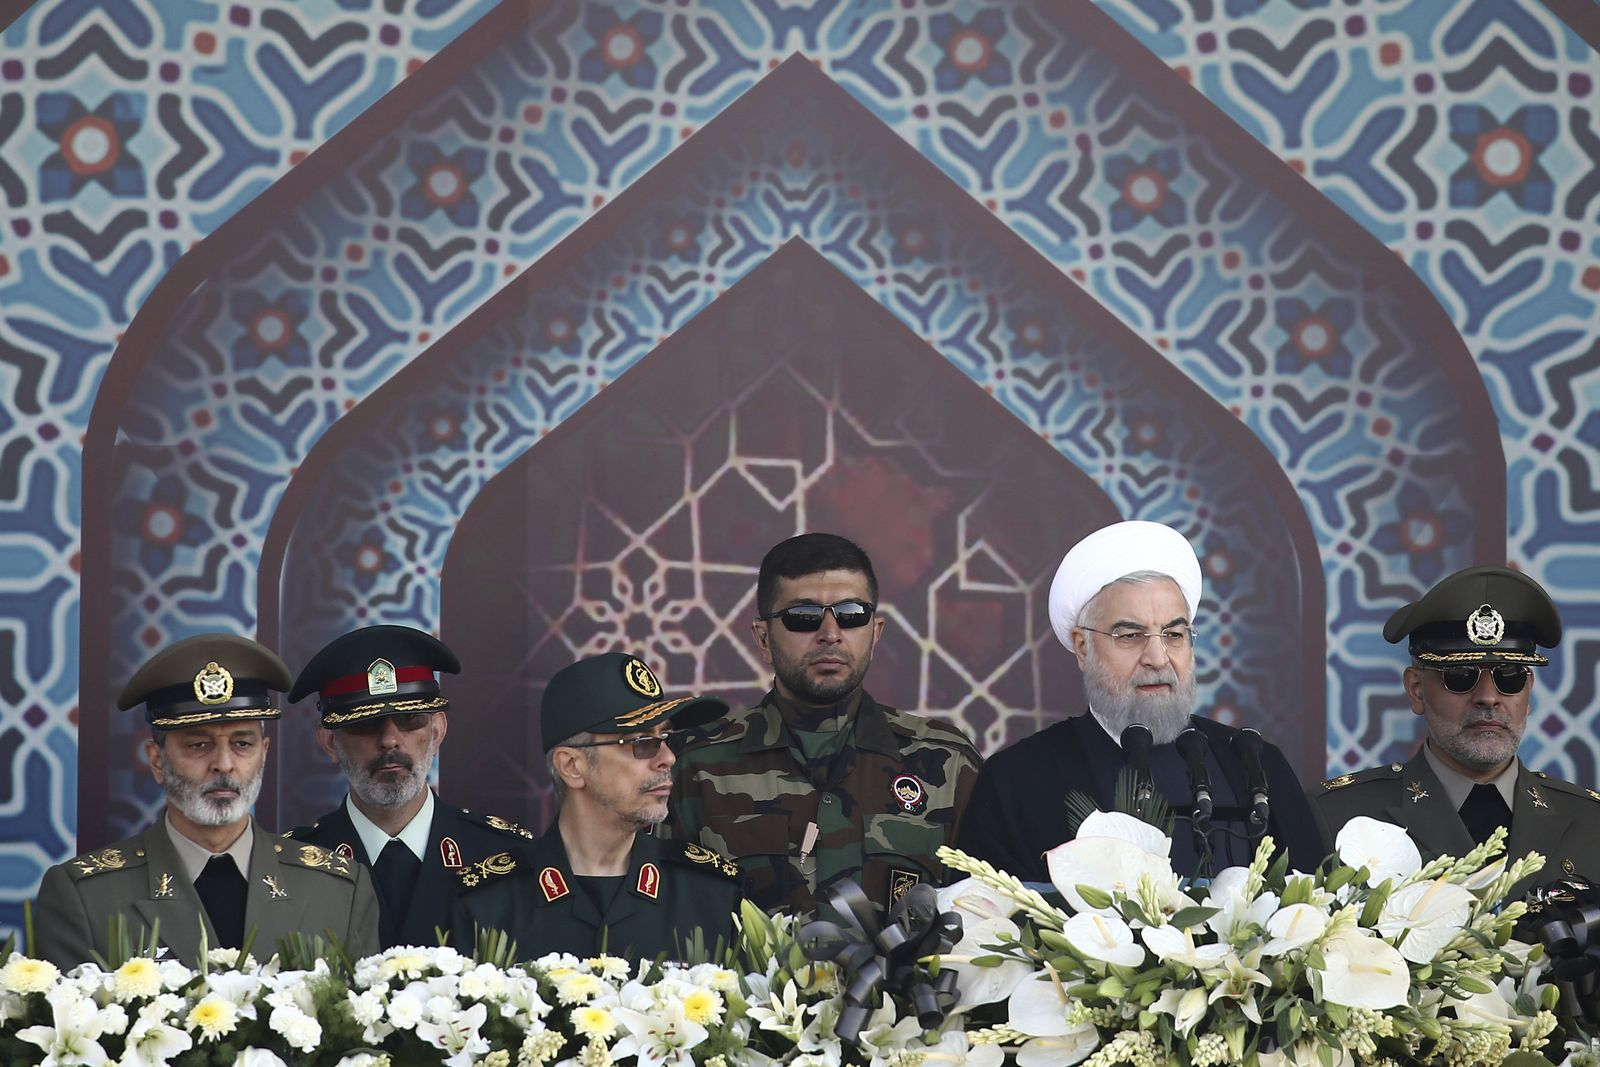 Militärparade in Iran